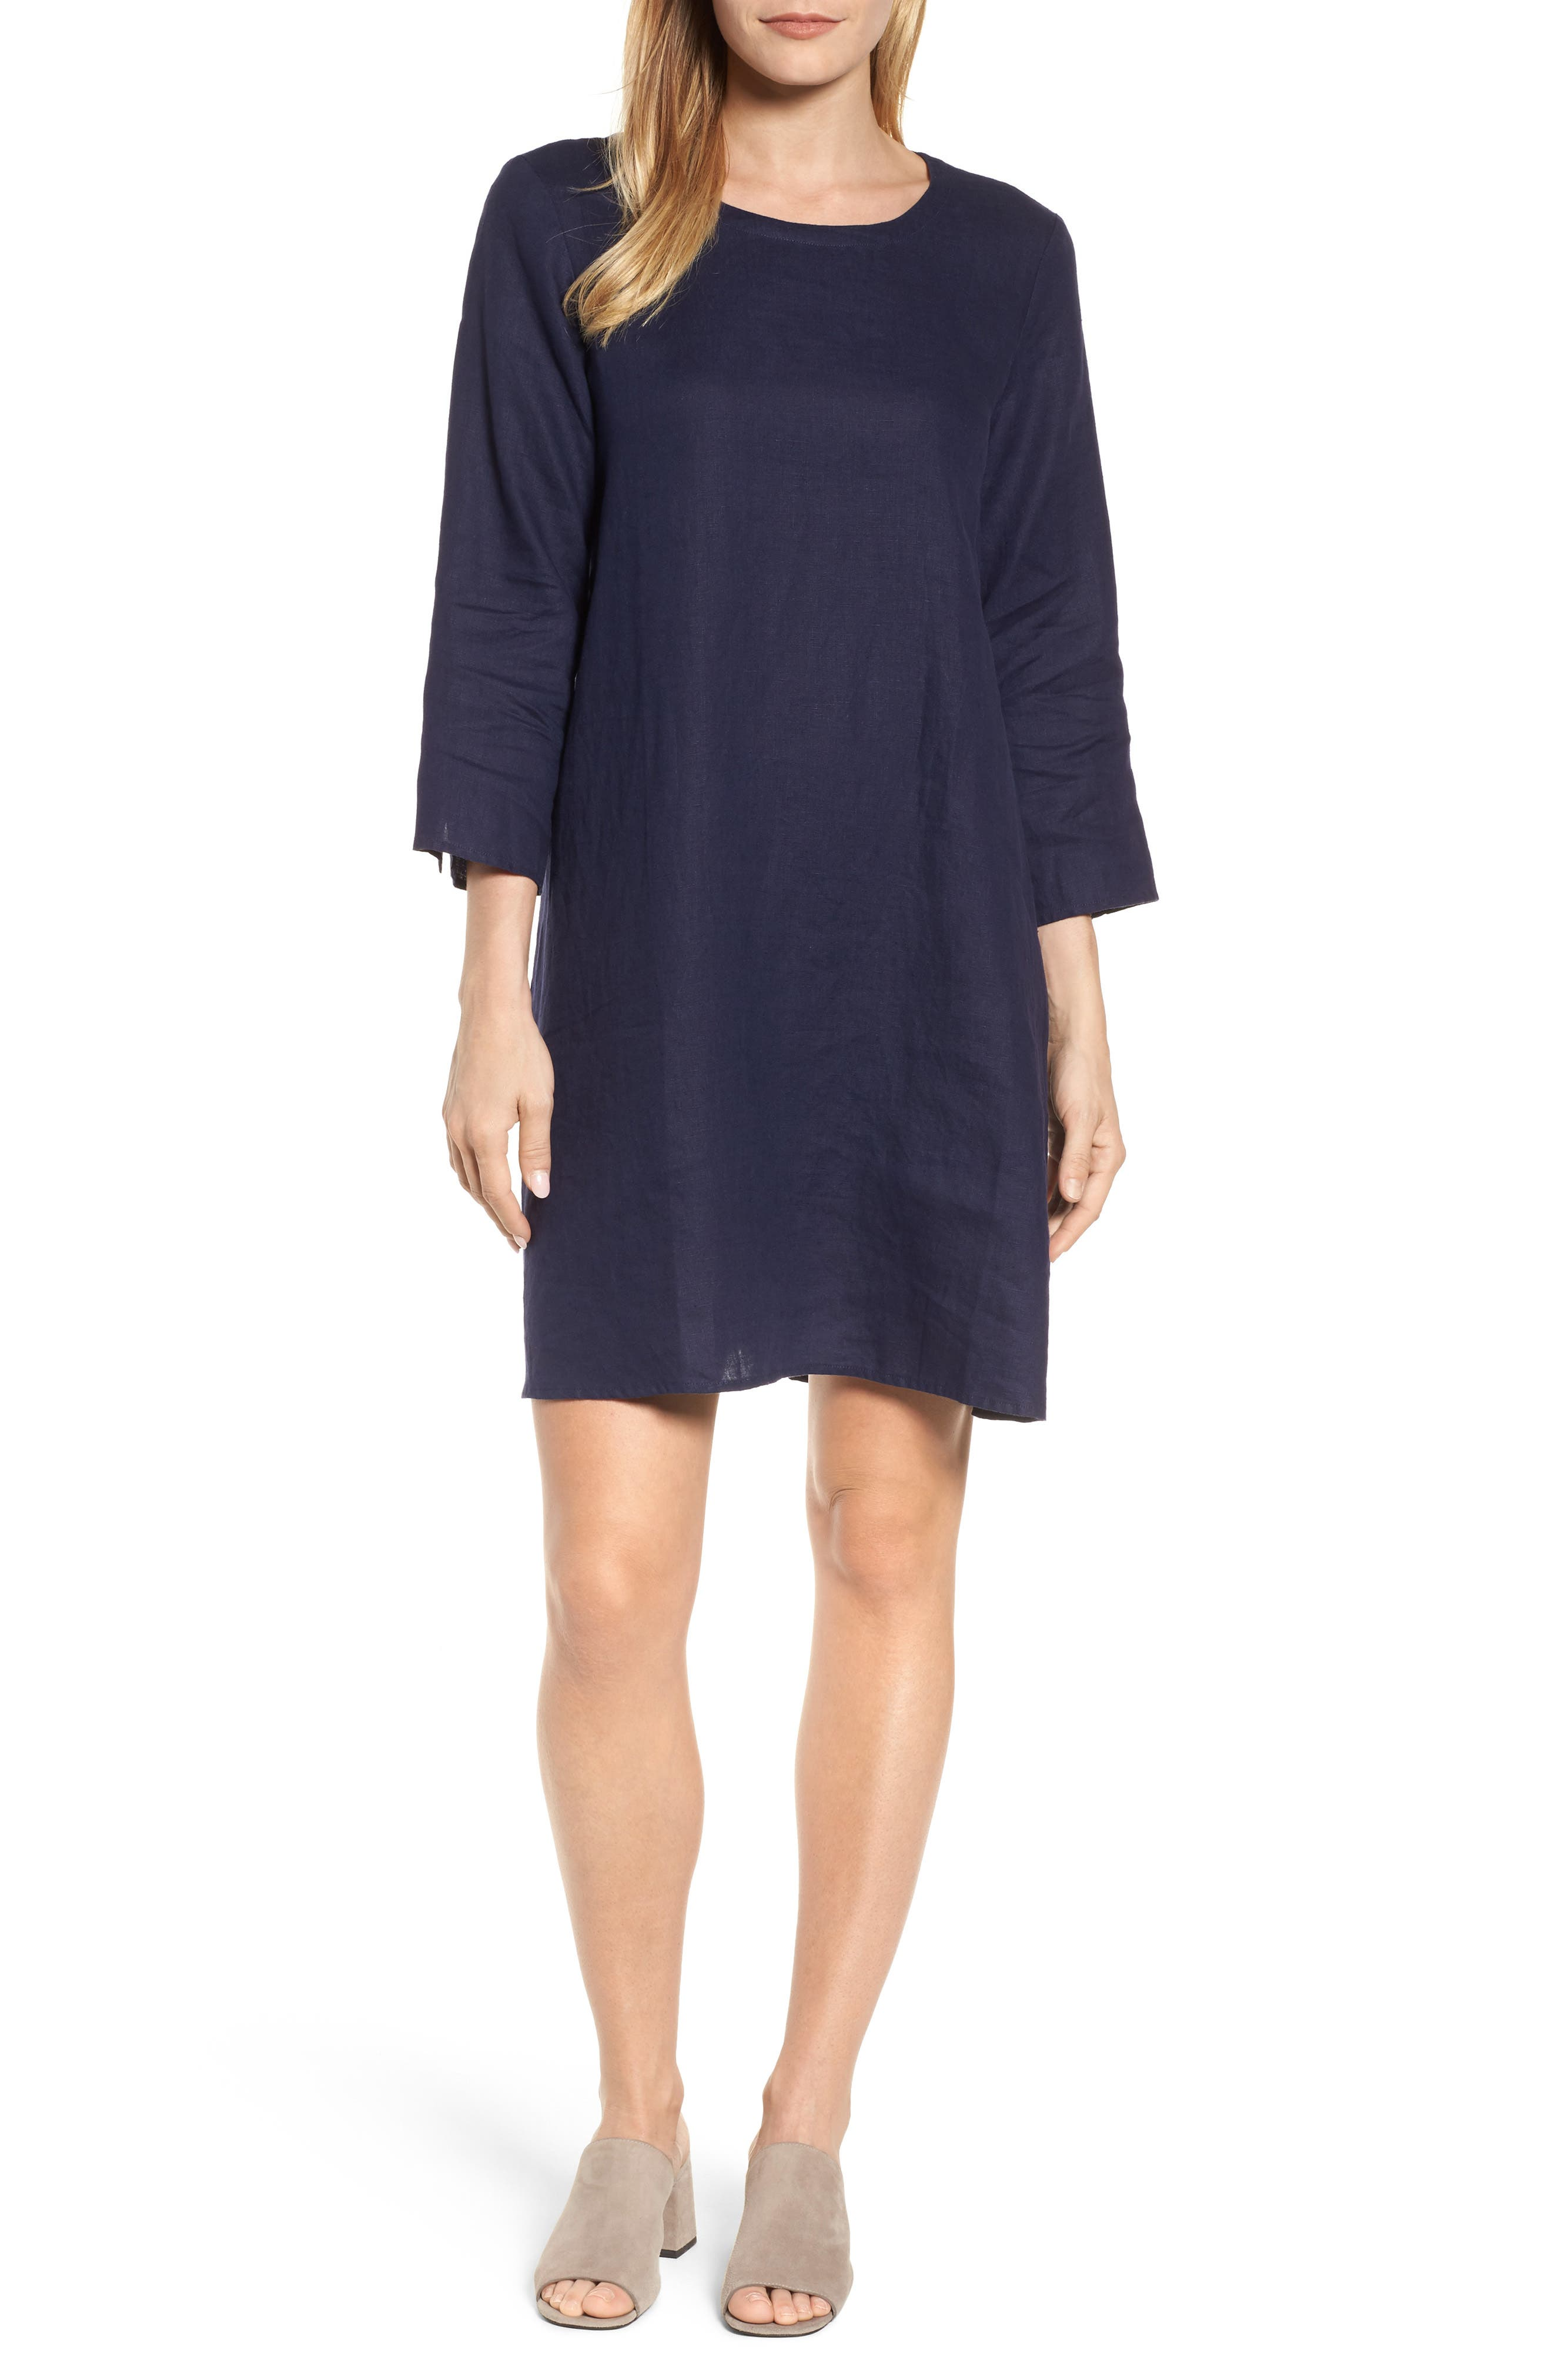 EILEEN FISHER,                             Organic Linen Round Neck Shift Dress,                             Main thumbnail 1, color,                             419